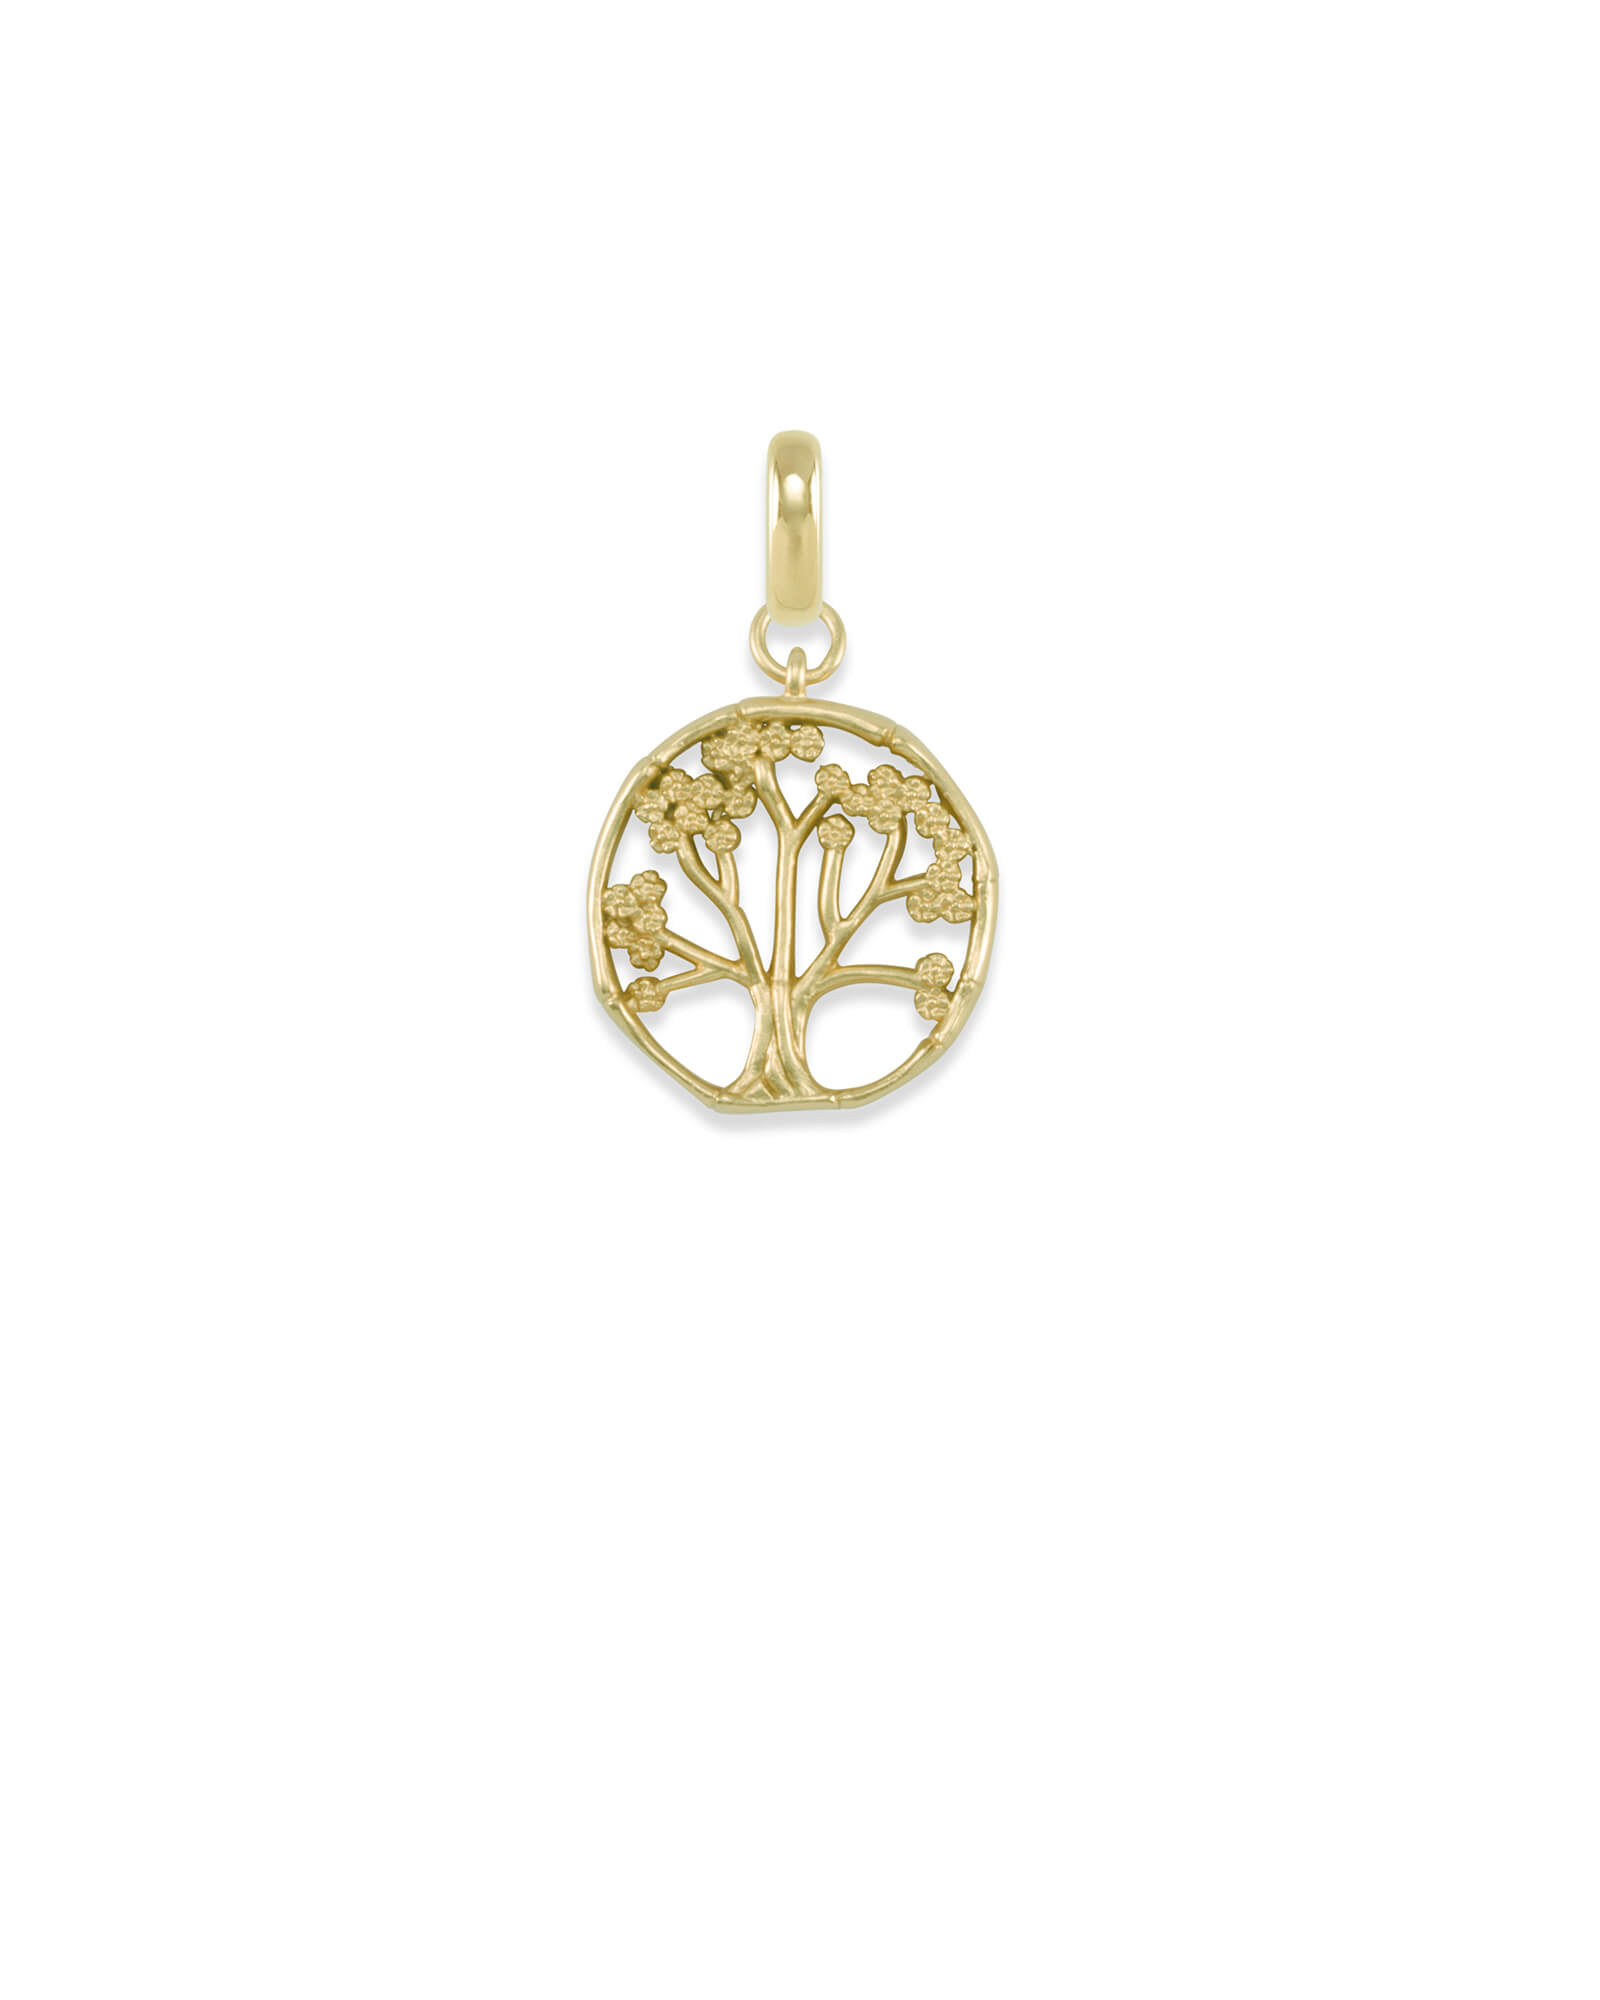 Cherry Blossom Tree Charm in Gold